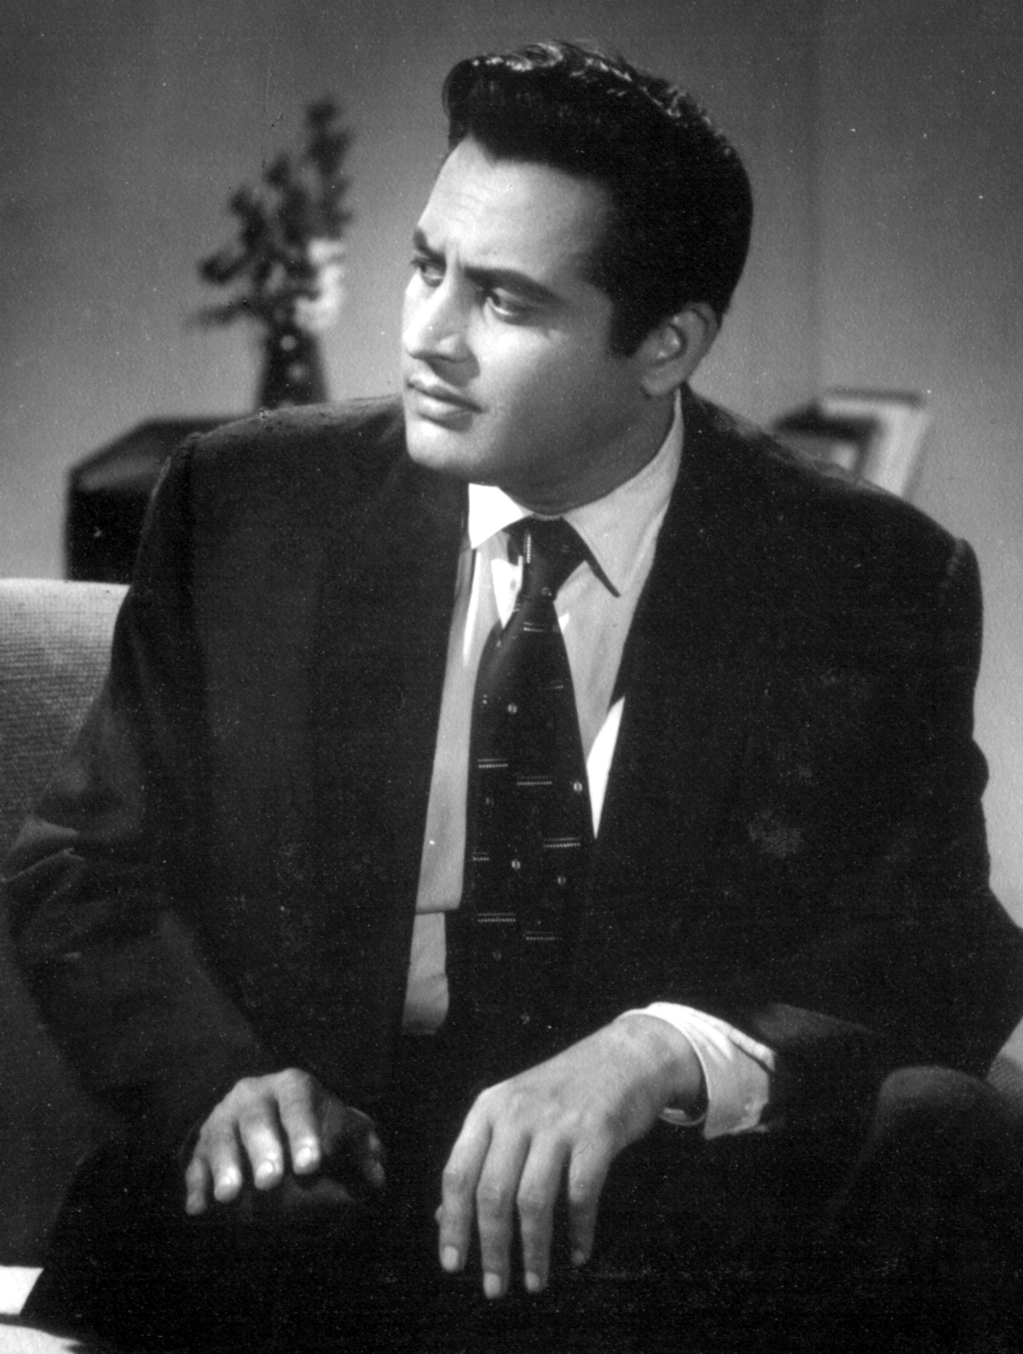 guru dutt pyaasa songsguru dutt movies, guru dutt songs, guru dutt daughter, guru dutt songs list, guru dutt geeta dutt, guru dutt waheeda rehman songs, guru dutt quotes, guru dutt interview, guru dutt movies list, guru dutt pyaasa, guru dutt pyaasa songs, guru dutt deepika padukone, guru dutt patnaik, guru dutt and sunil dutt relation, guru dutt film songs, guru dutt songs free download, guru dutt biography in hindi, guru dutt sad songs, guru dutt sondhi, guru dutt best movies